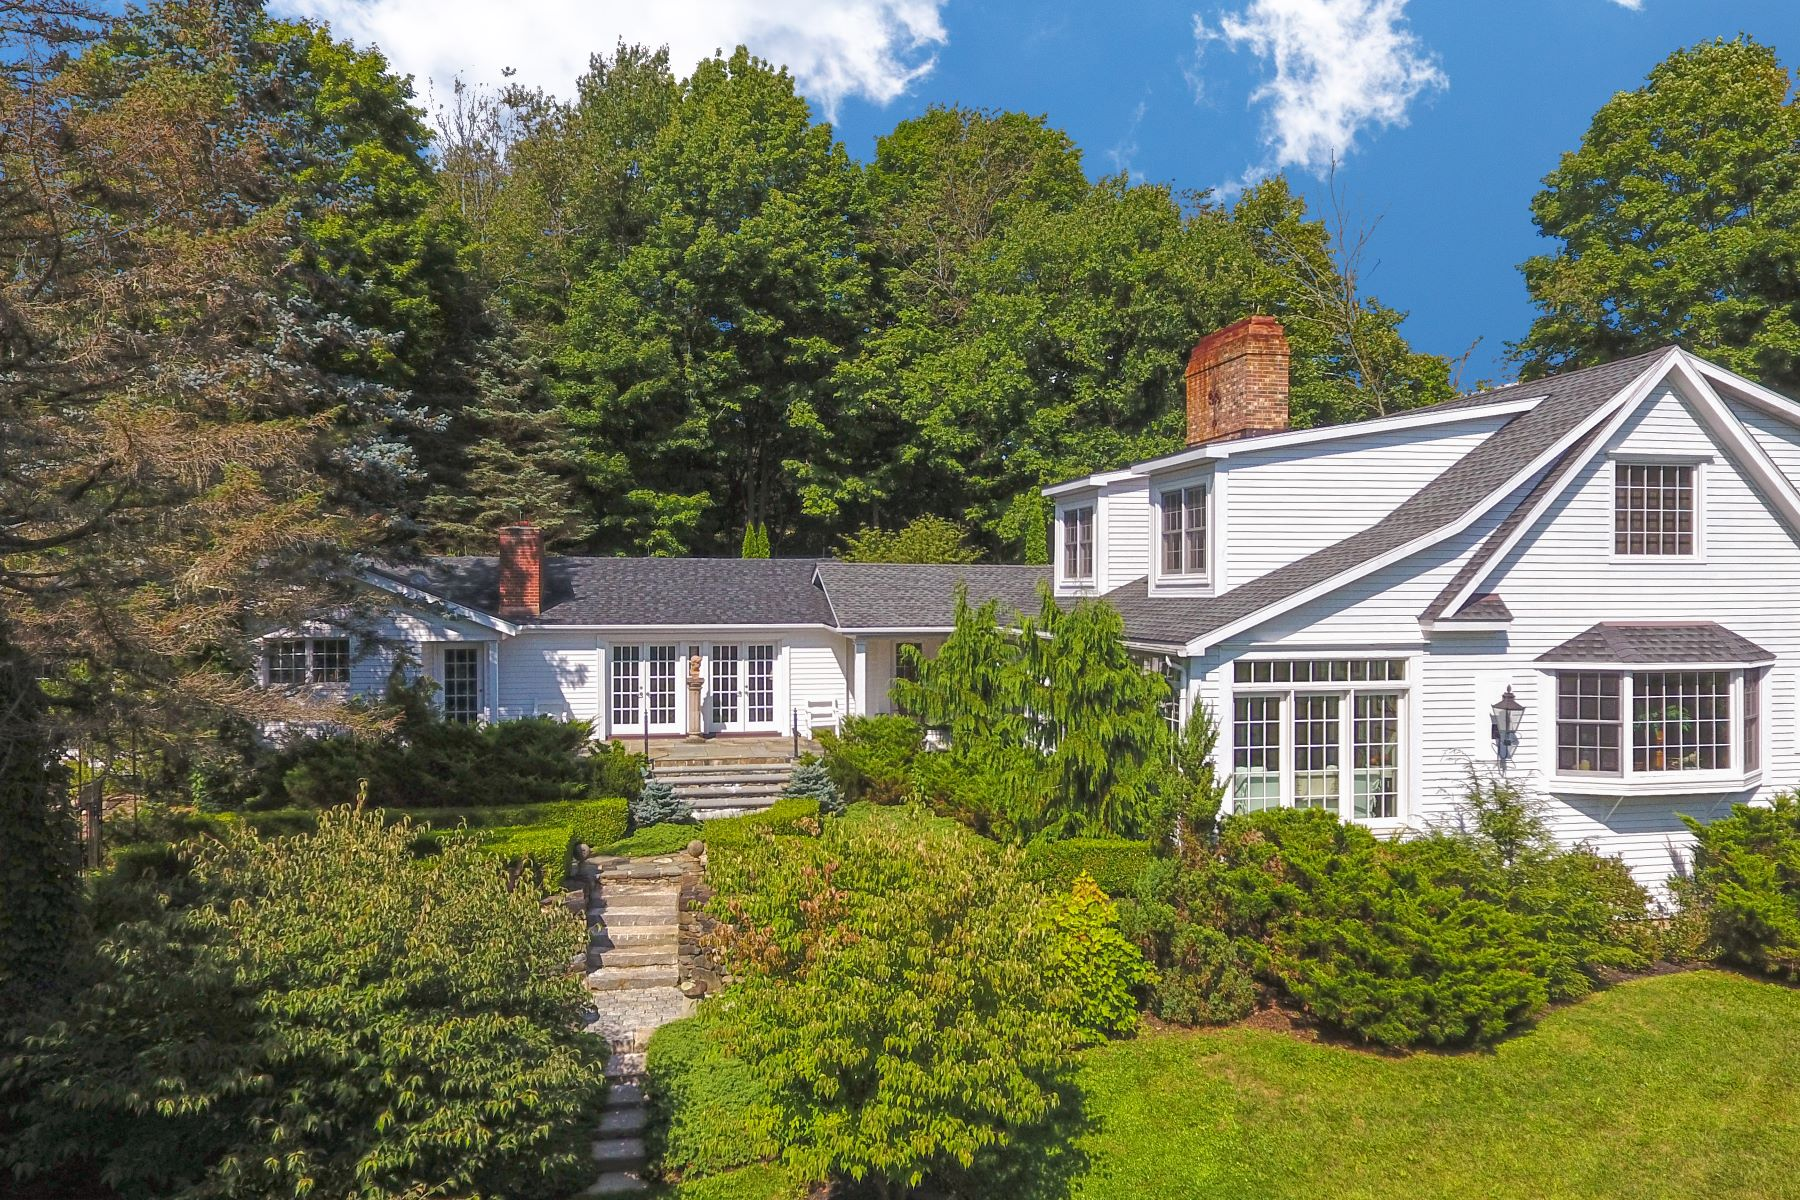 Single Family Homes for Active at Old Hollywood in Litchfield Hills 27 Cornwall Road Warren, Connecticut 06754 United States